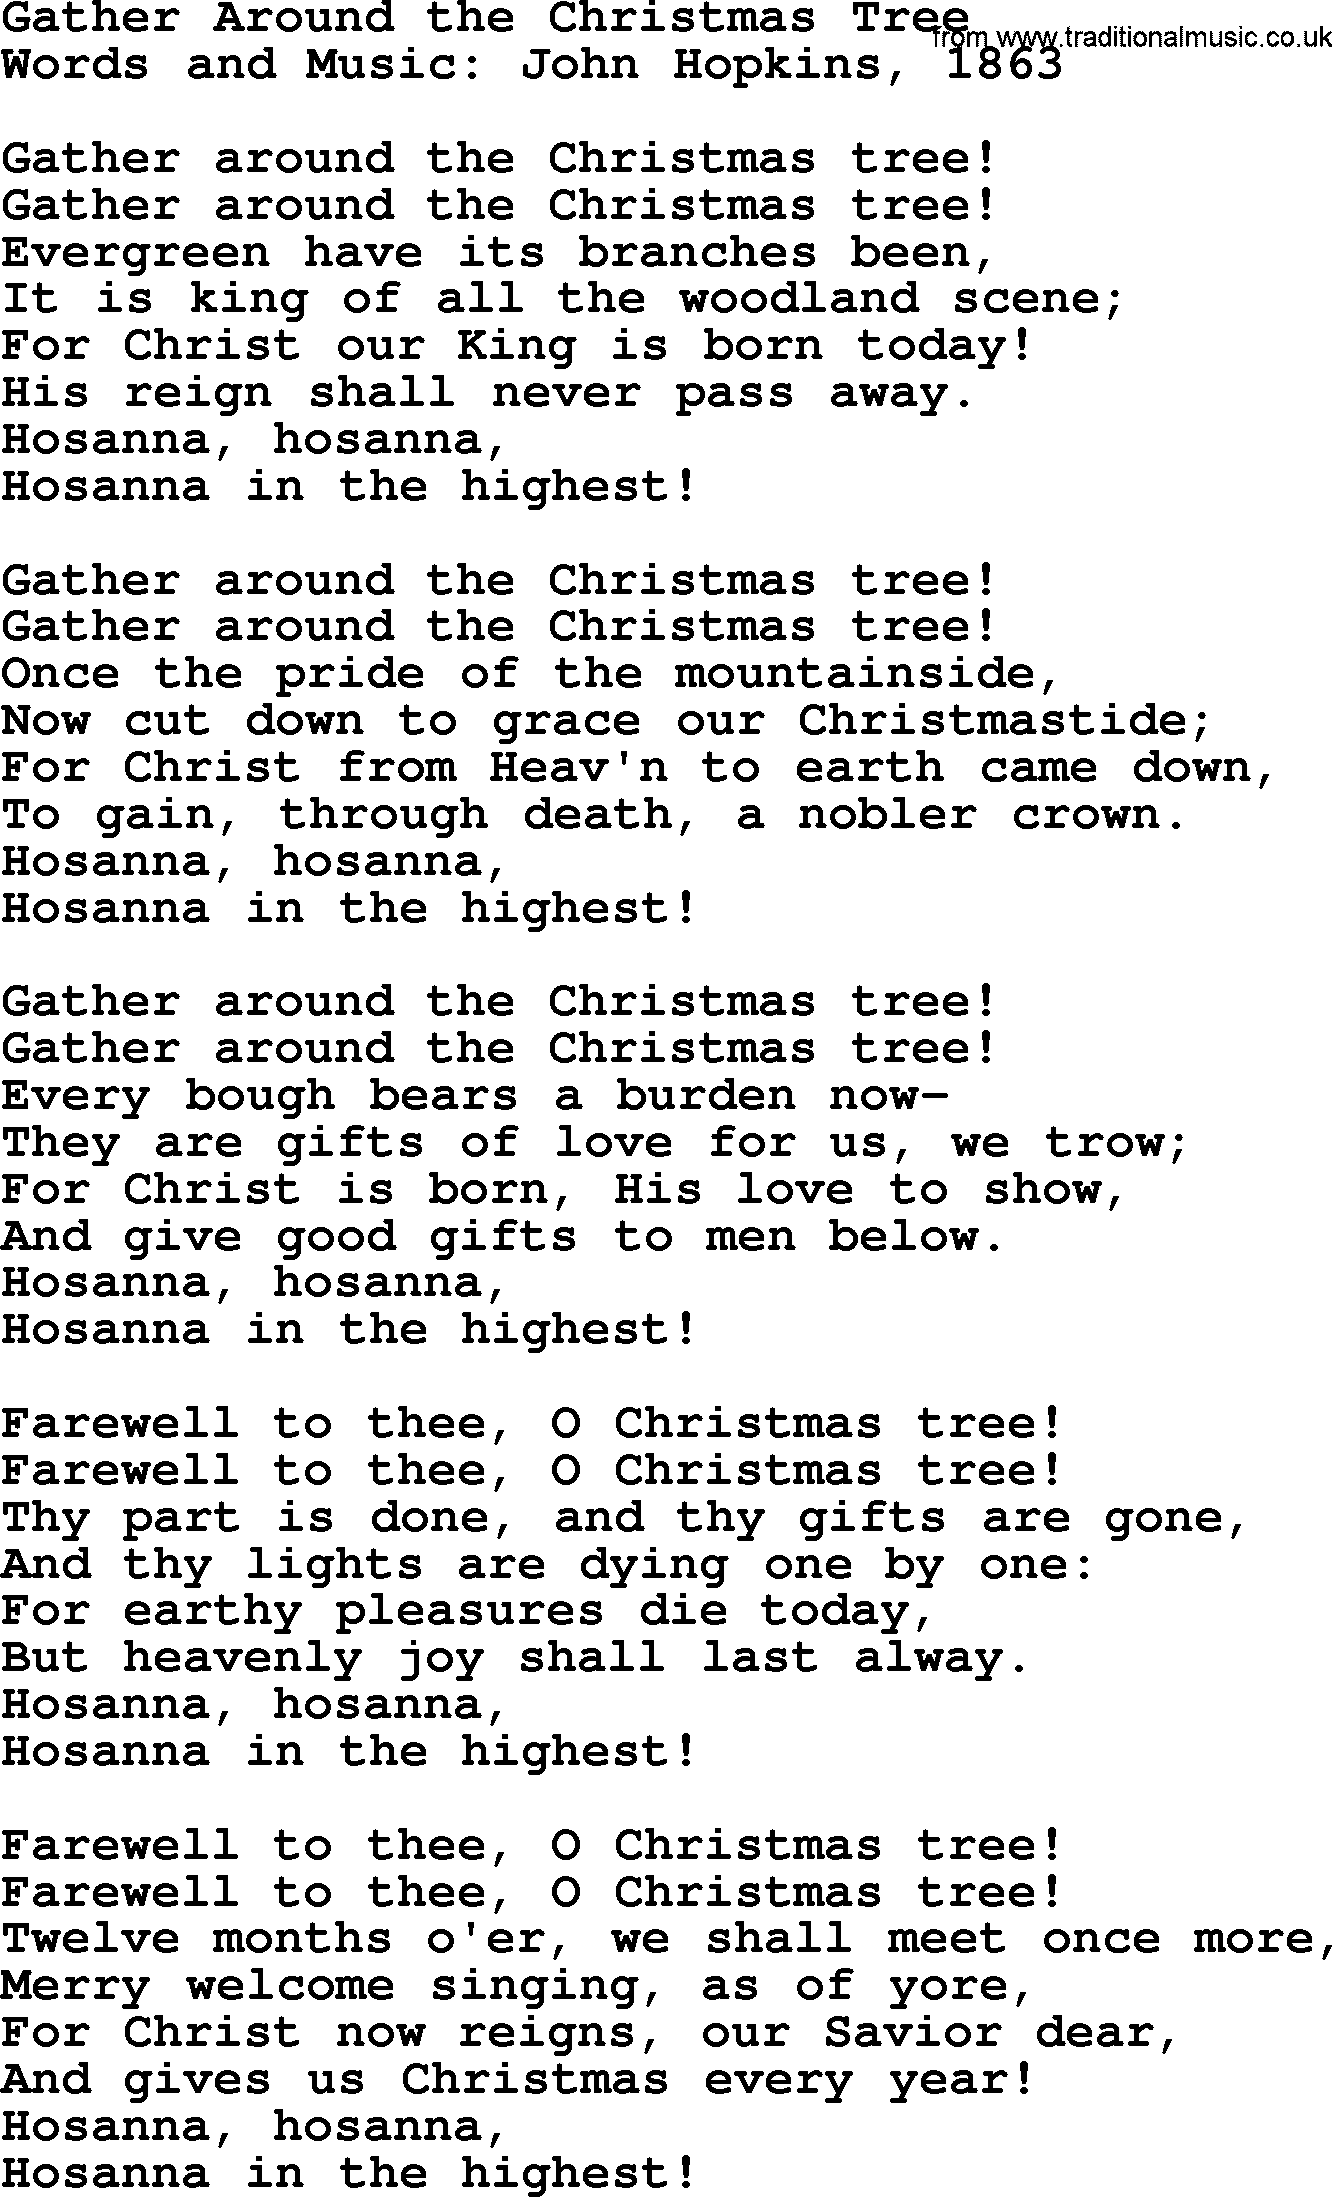 Christmas Powerpoints, Song: Gather Around The Christmas Tree ...